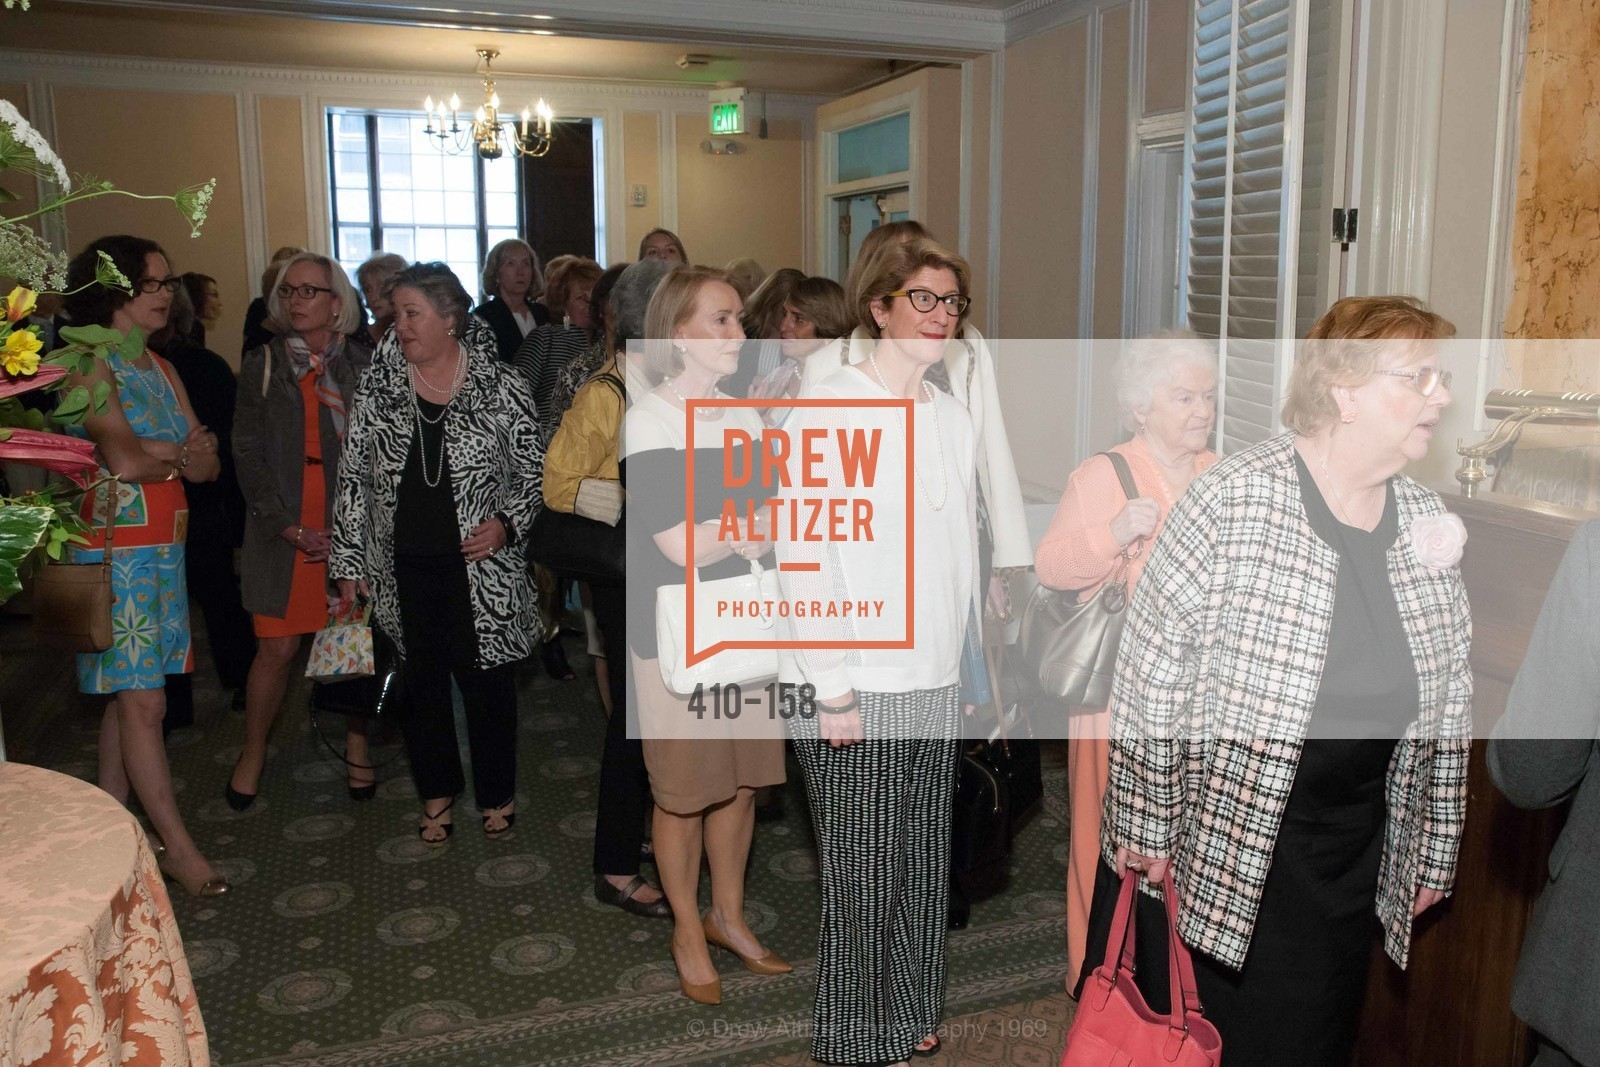 atmosphere, Metropolitan Club Hosts Centennial Tea, June 8th, 2015, Photo,Drew Altizer, Drew Altizer Photography, full-service agency, private events, San Francisco photographer, photographer california